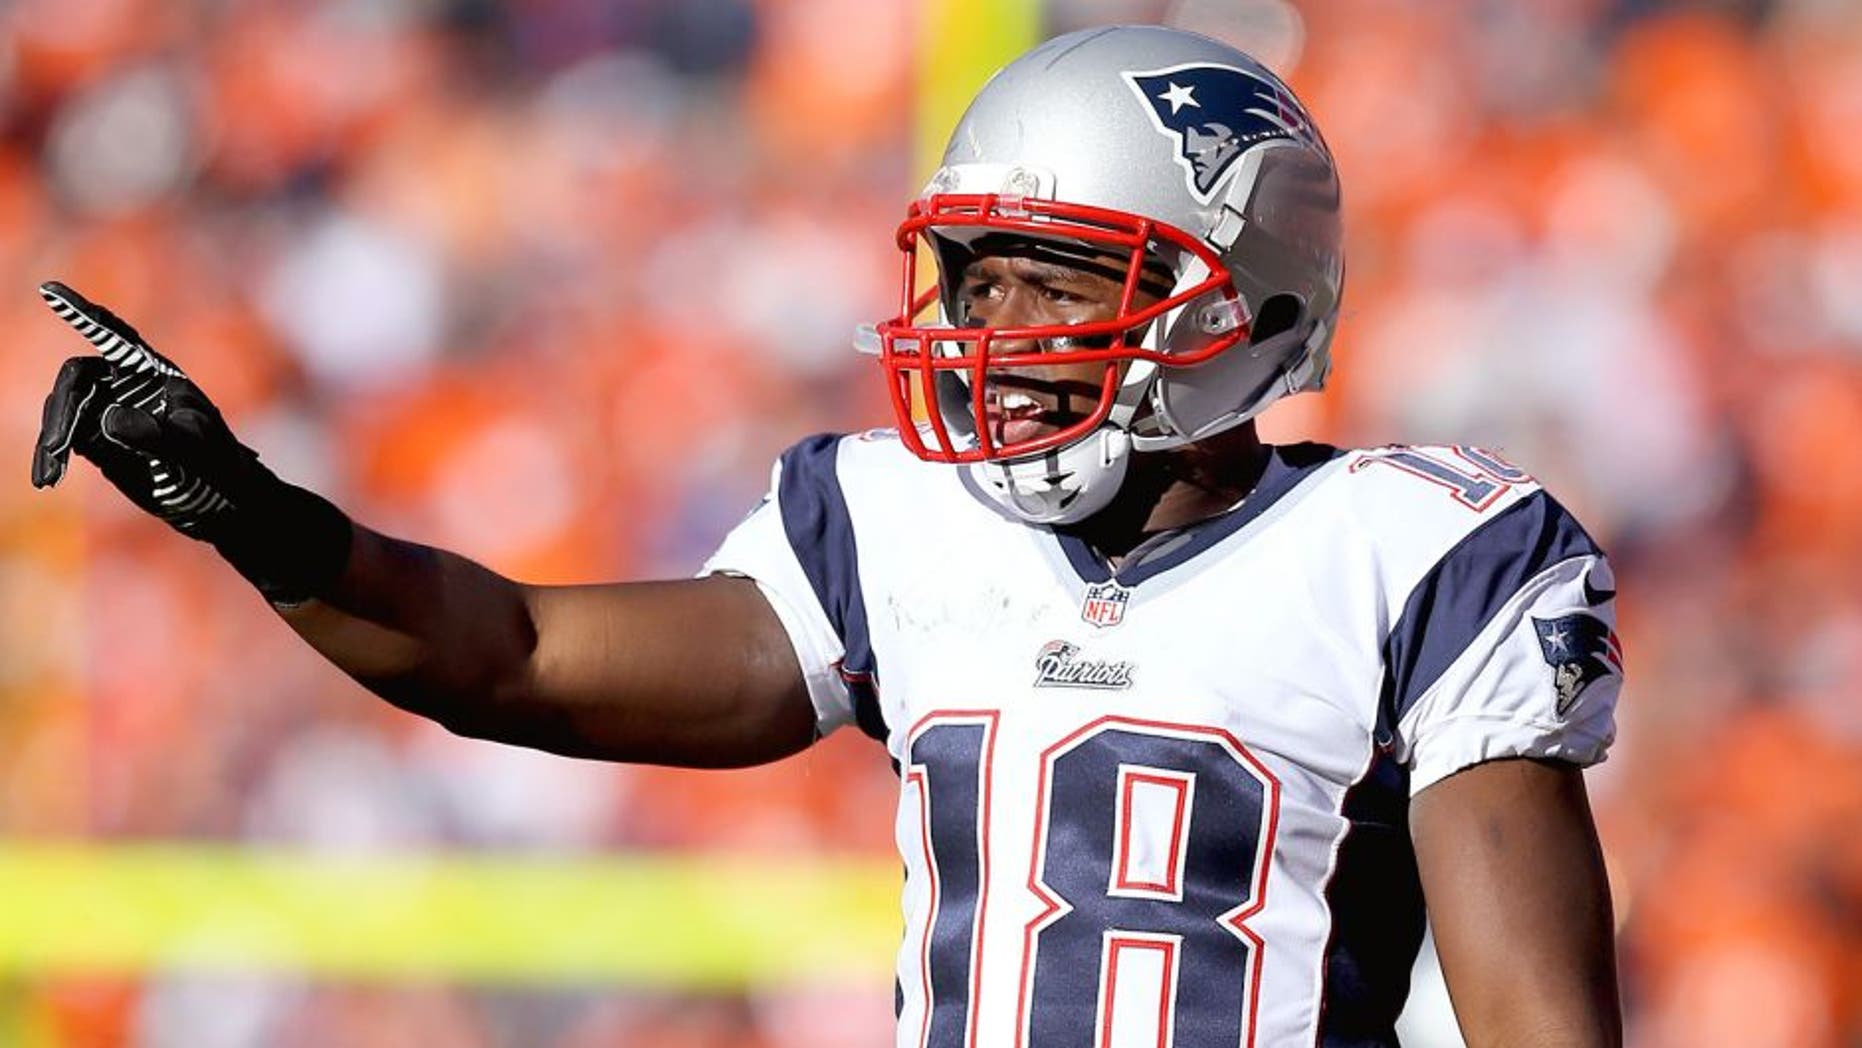 January 19, 2014; Denver, CO, USA; New England Patriots wide receiver Matthew Slater against the Denver Broncos in the 2013 AFC Championship football game at Sports Authority Field at Mile High. Mandatory Credit: Mark J. Rebilas-USA TODAY Sports